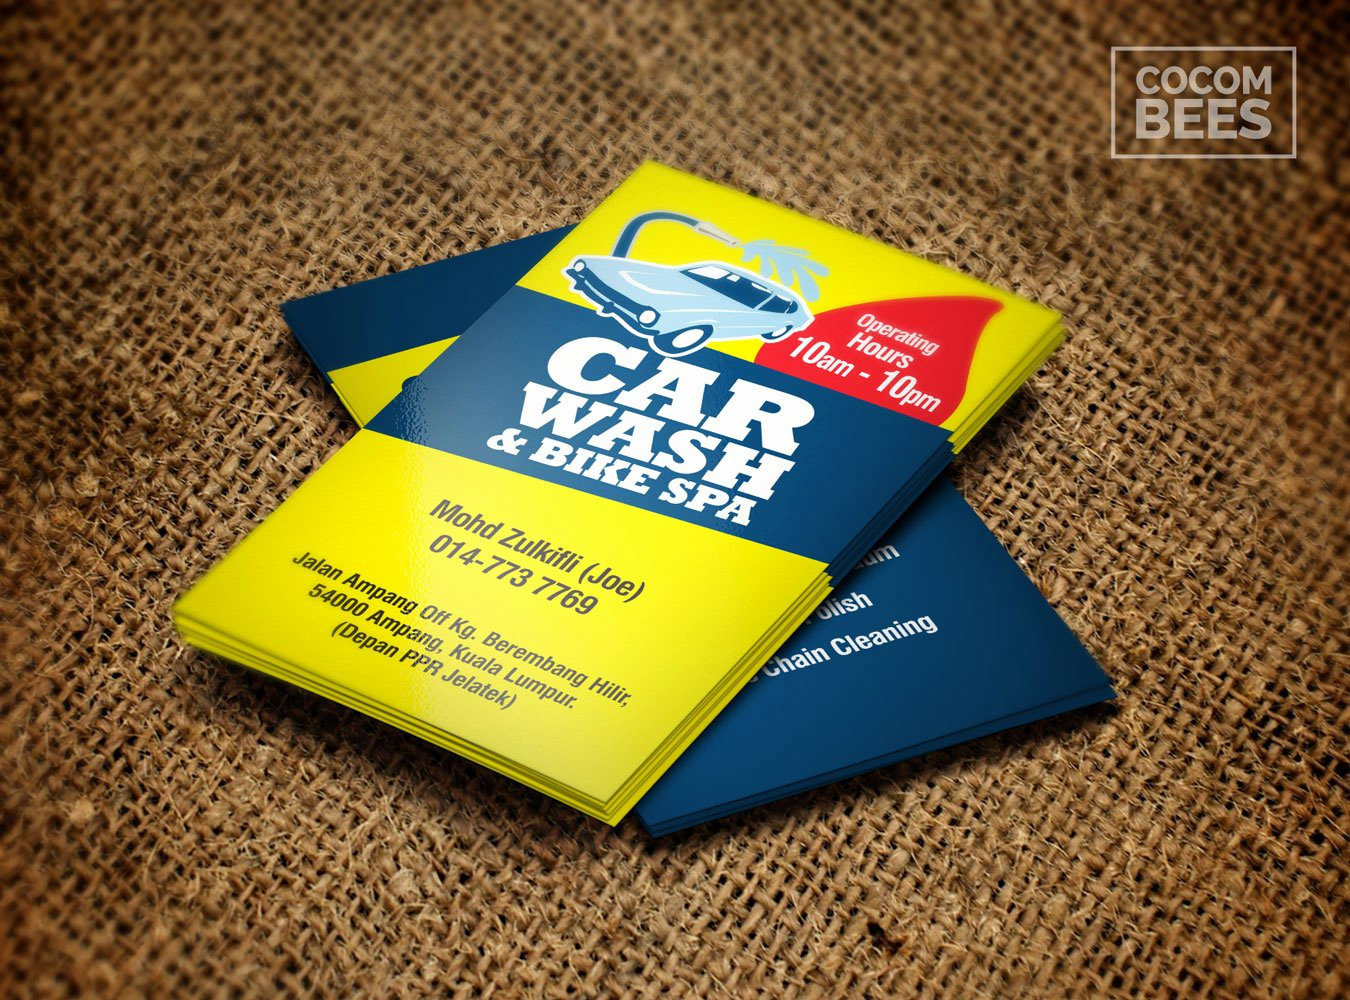 Car Wash Business Cards Awesome Car Wash & Bike Spa Business Card Design – Co Bee Studio